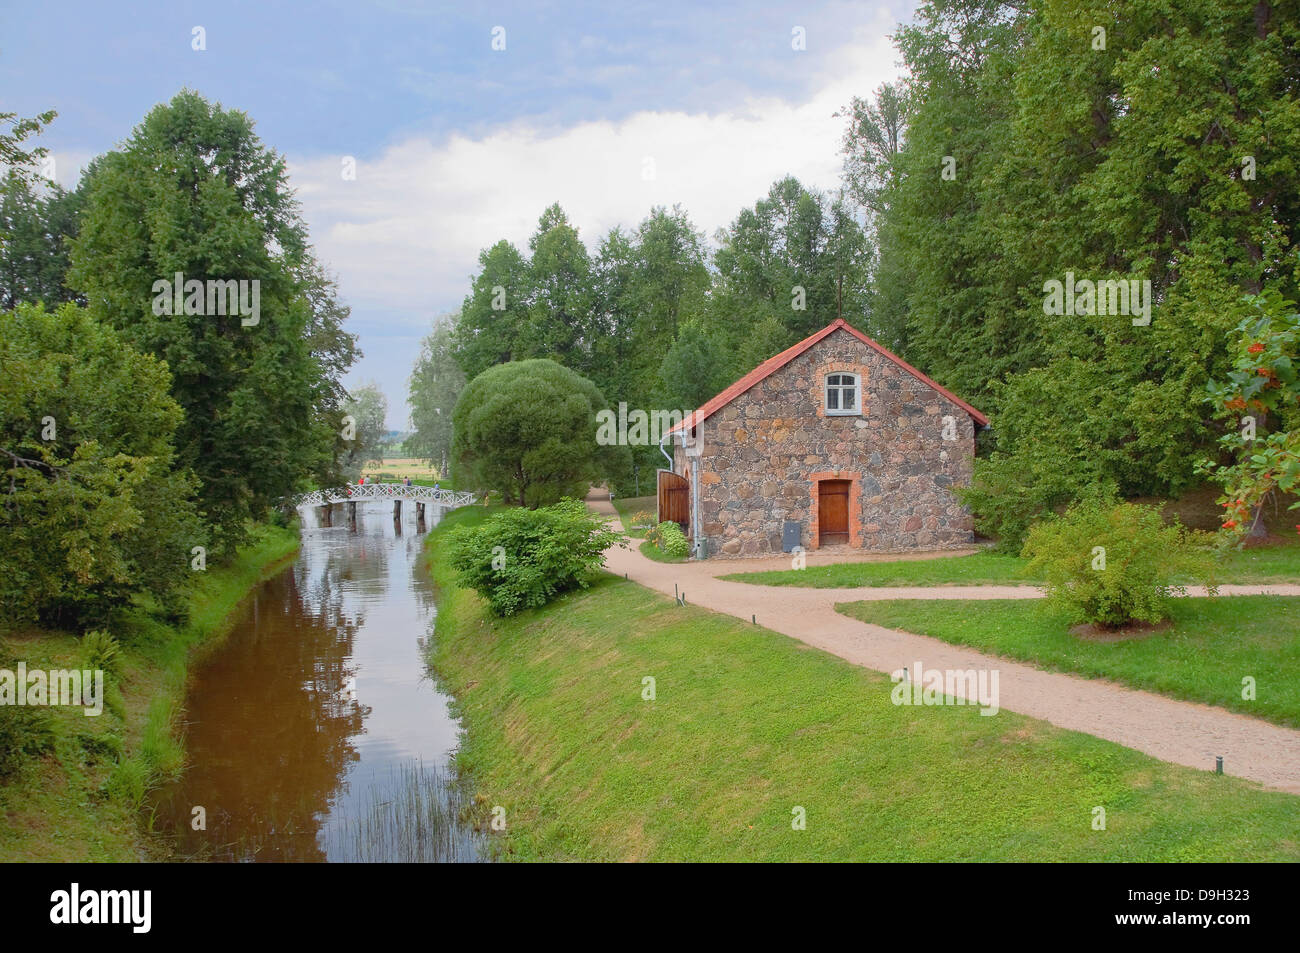 Large stone barn - Fair in the Park Manor Mikhailovskoe. Museum - Reserve Pushkin. - Stock Image